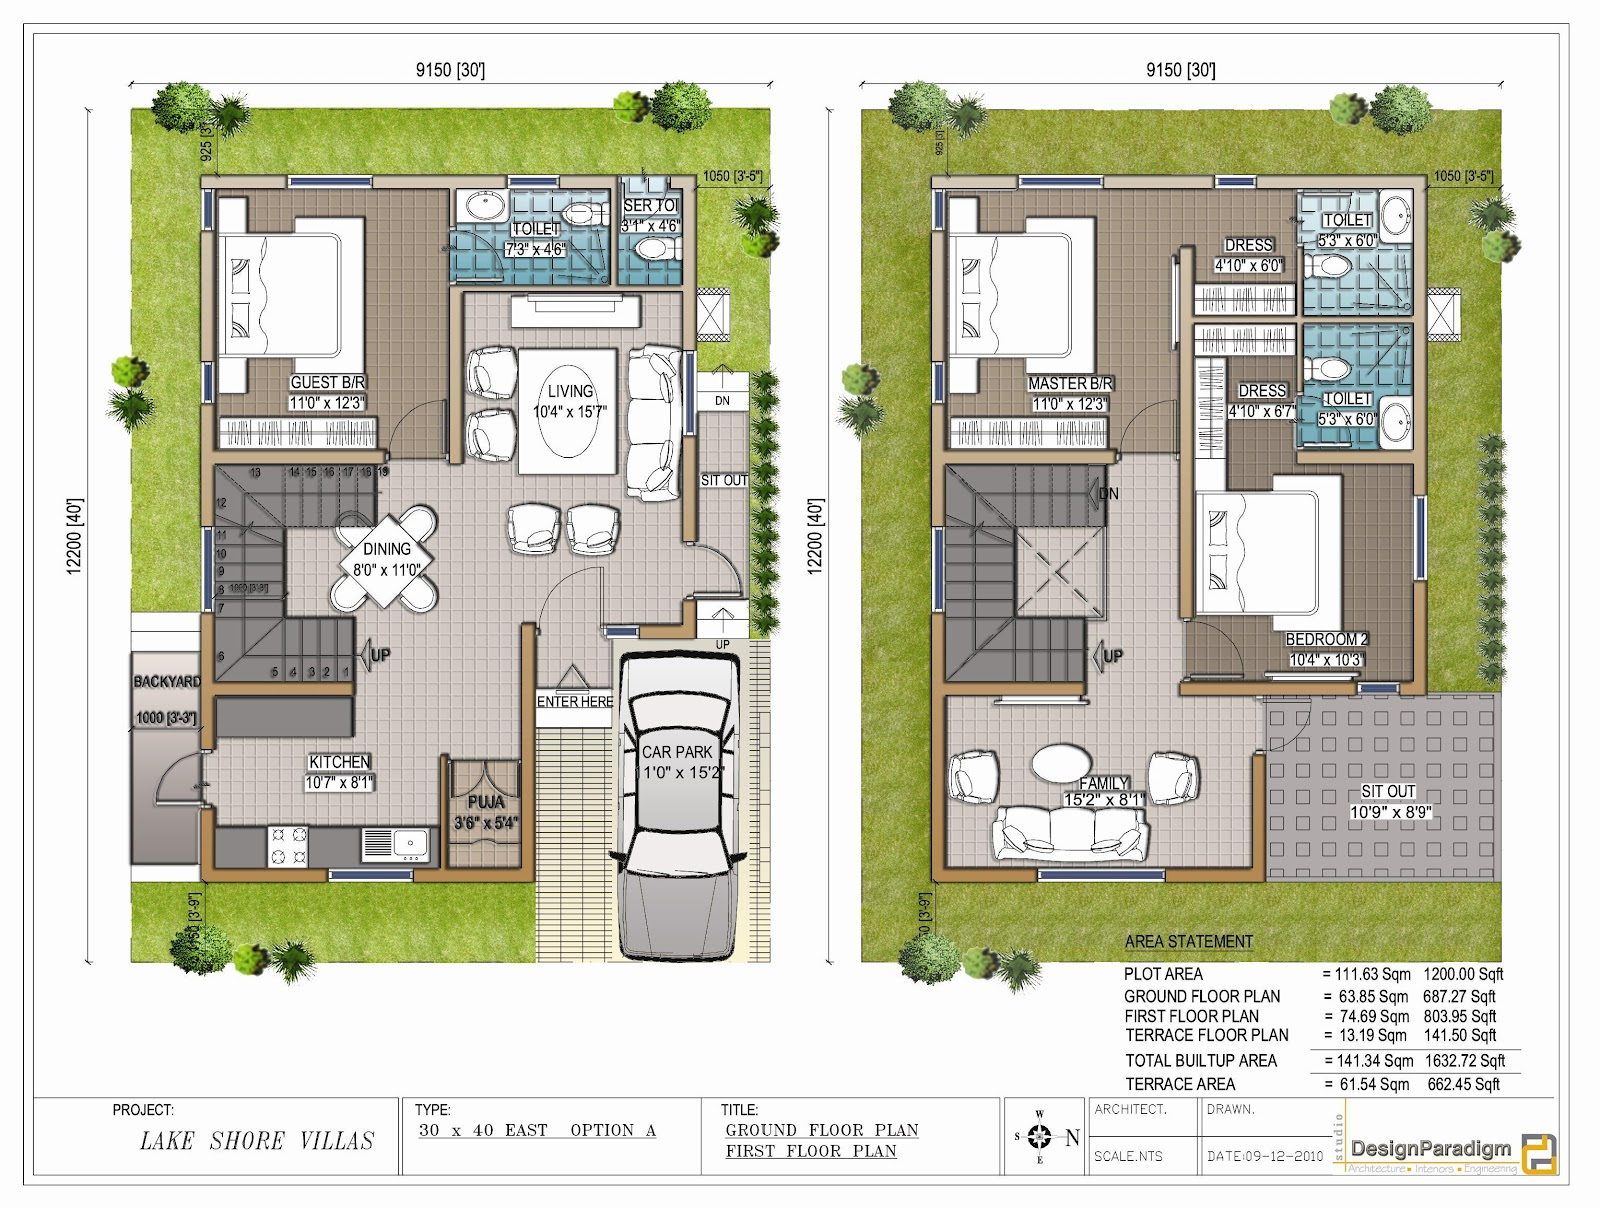 Lake shore villas designer duplex villas for sale in 30x50 house plans